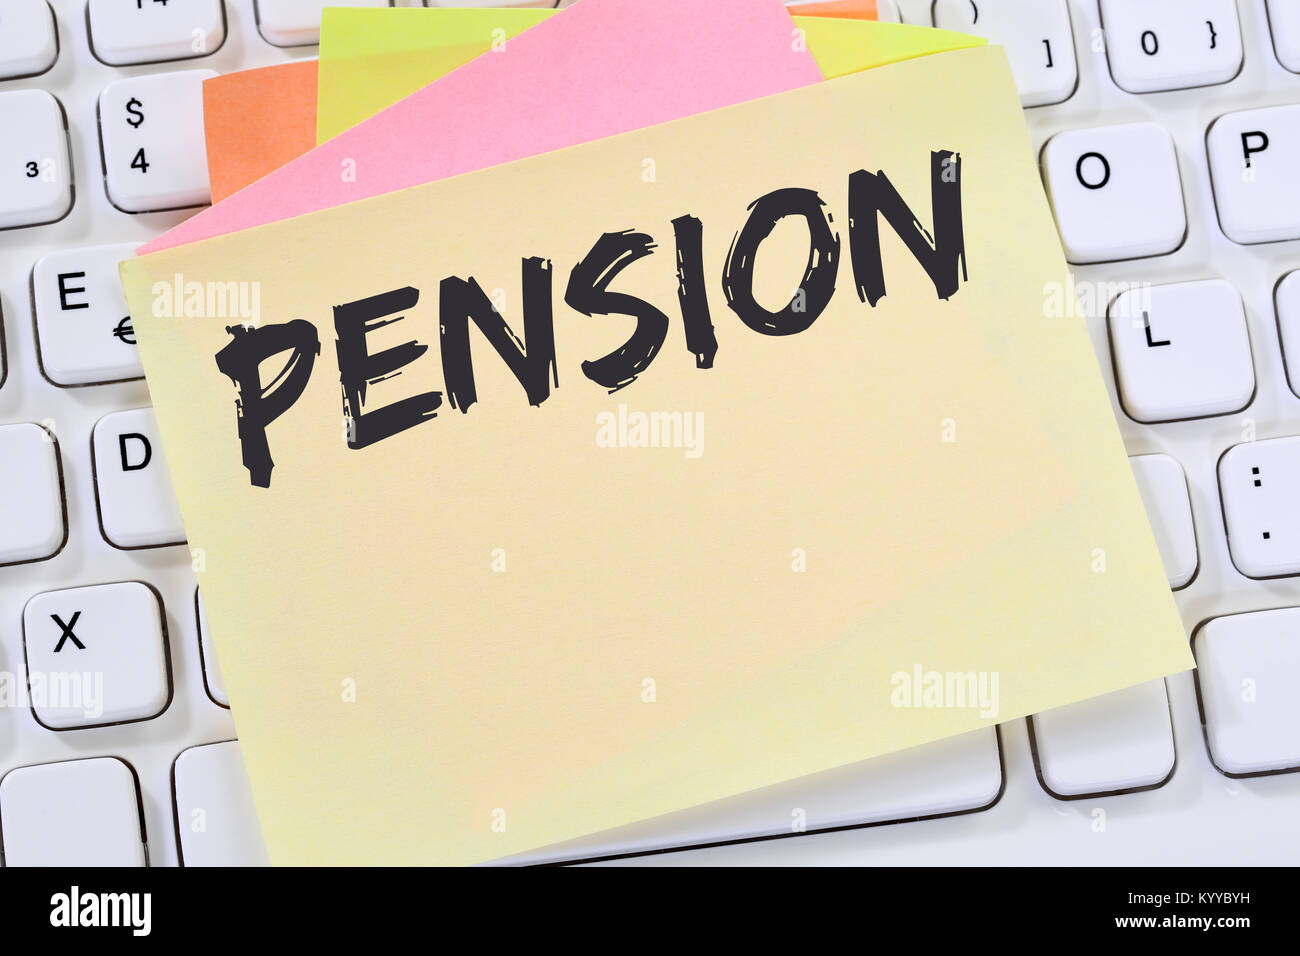 Pension retirement business concept note paper internet keyboard - Stock Image